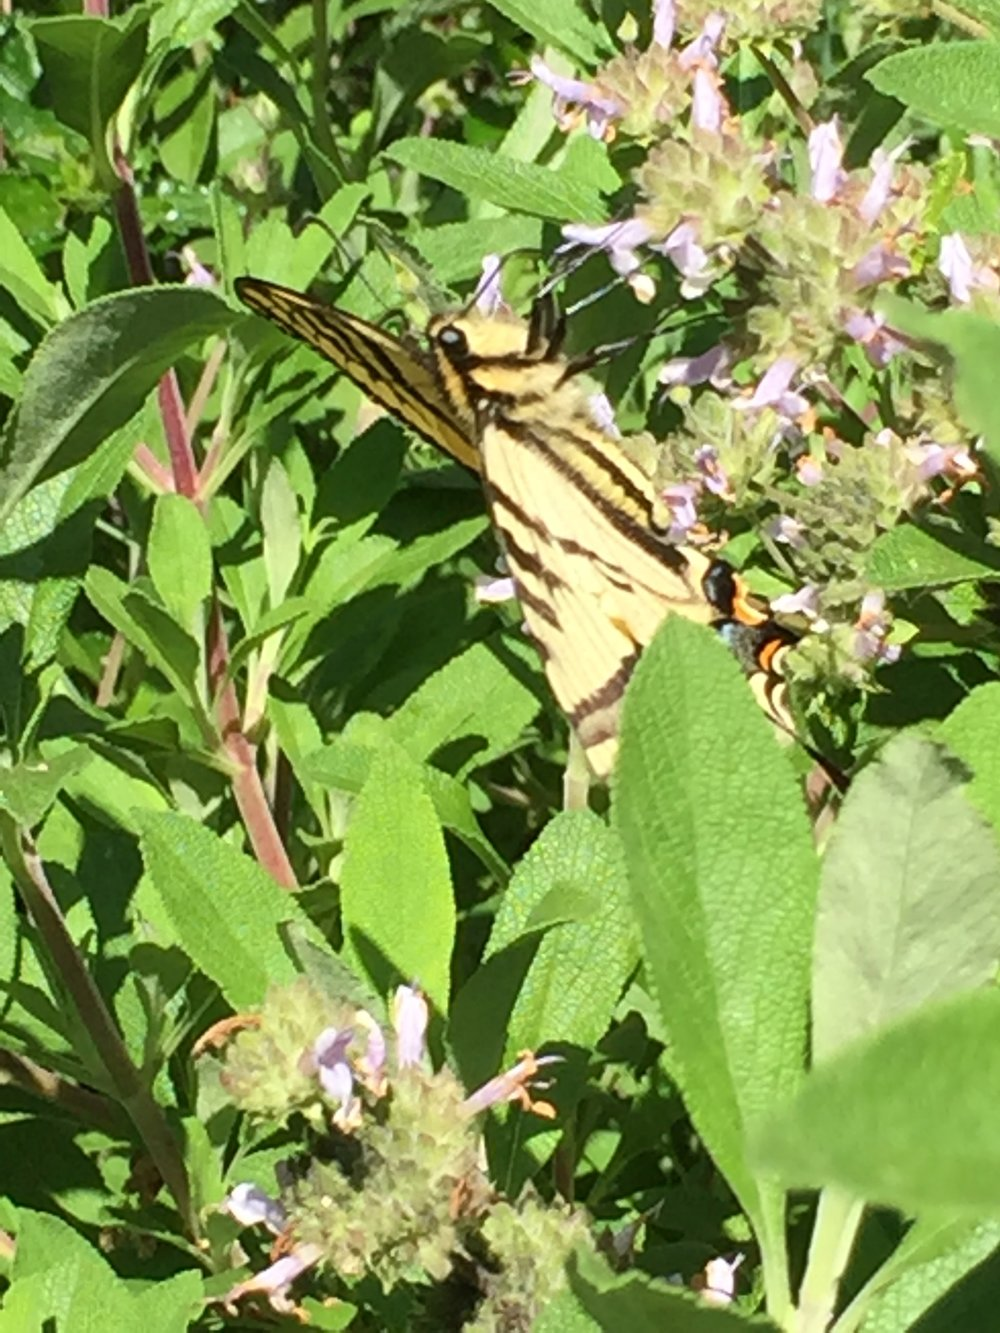 Western Swallowtail feeding on Salvia